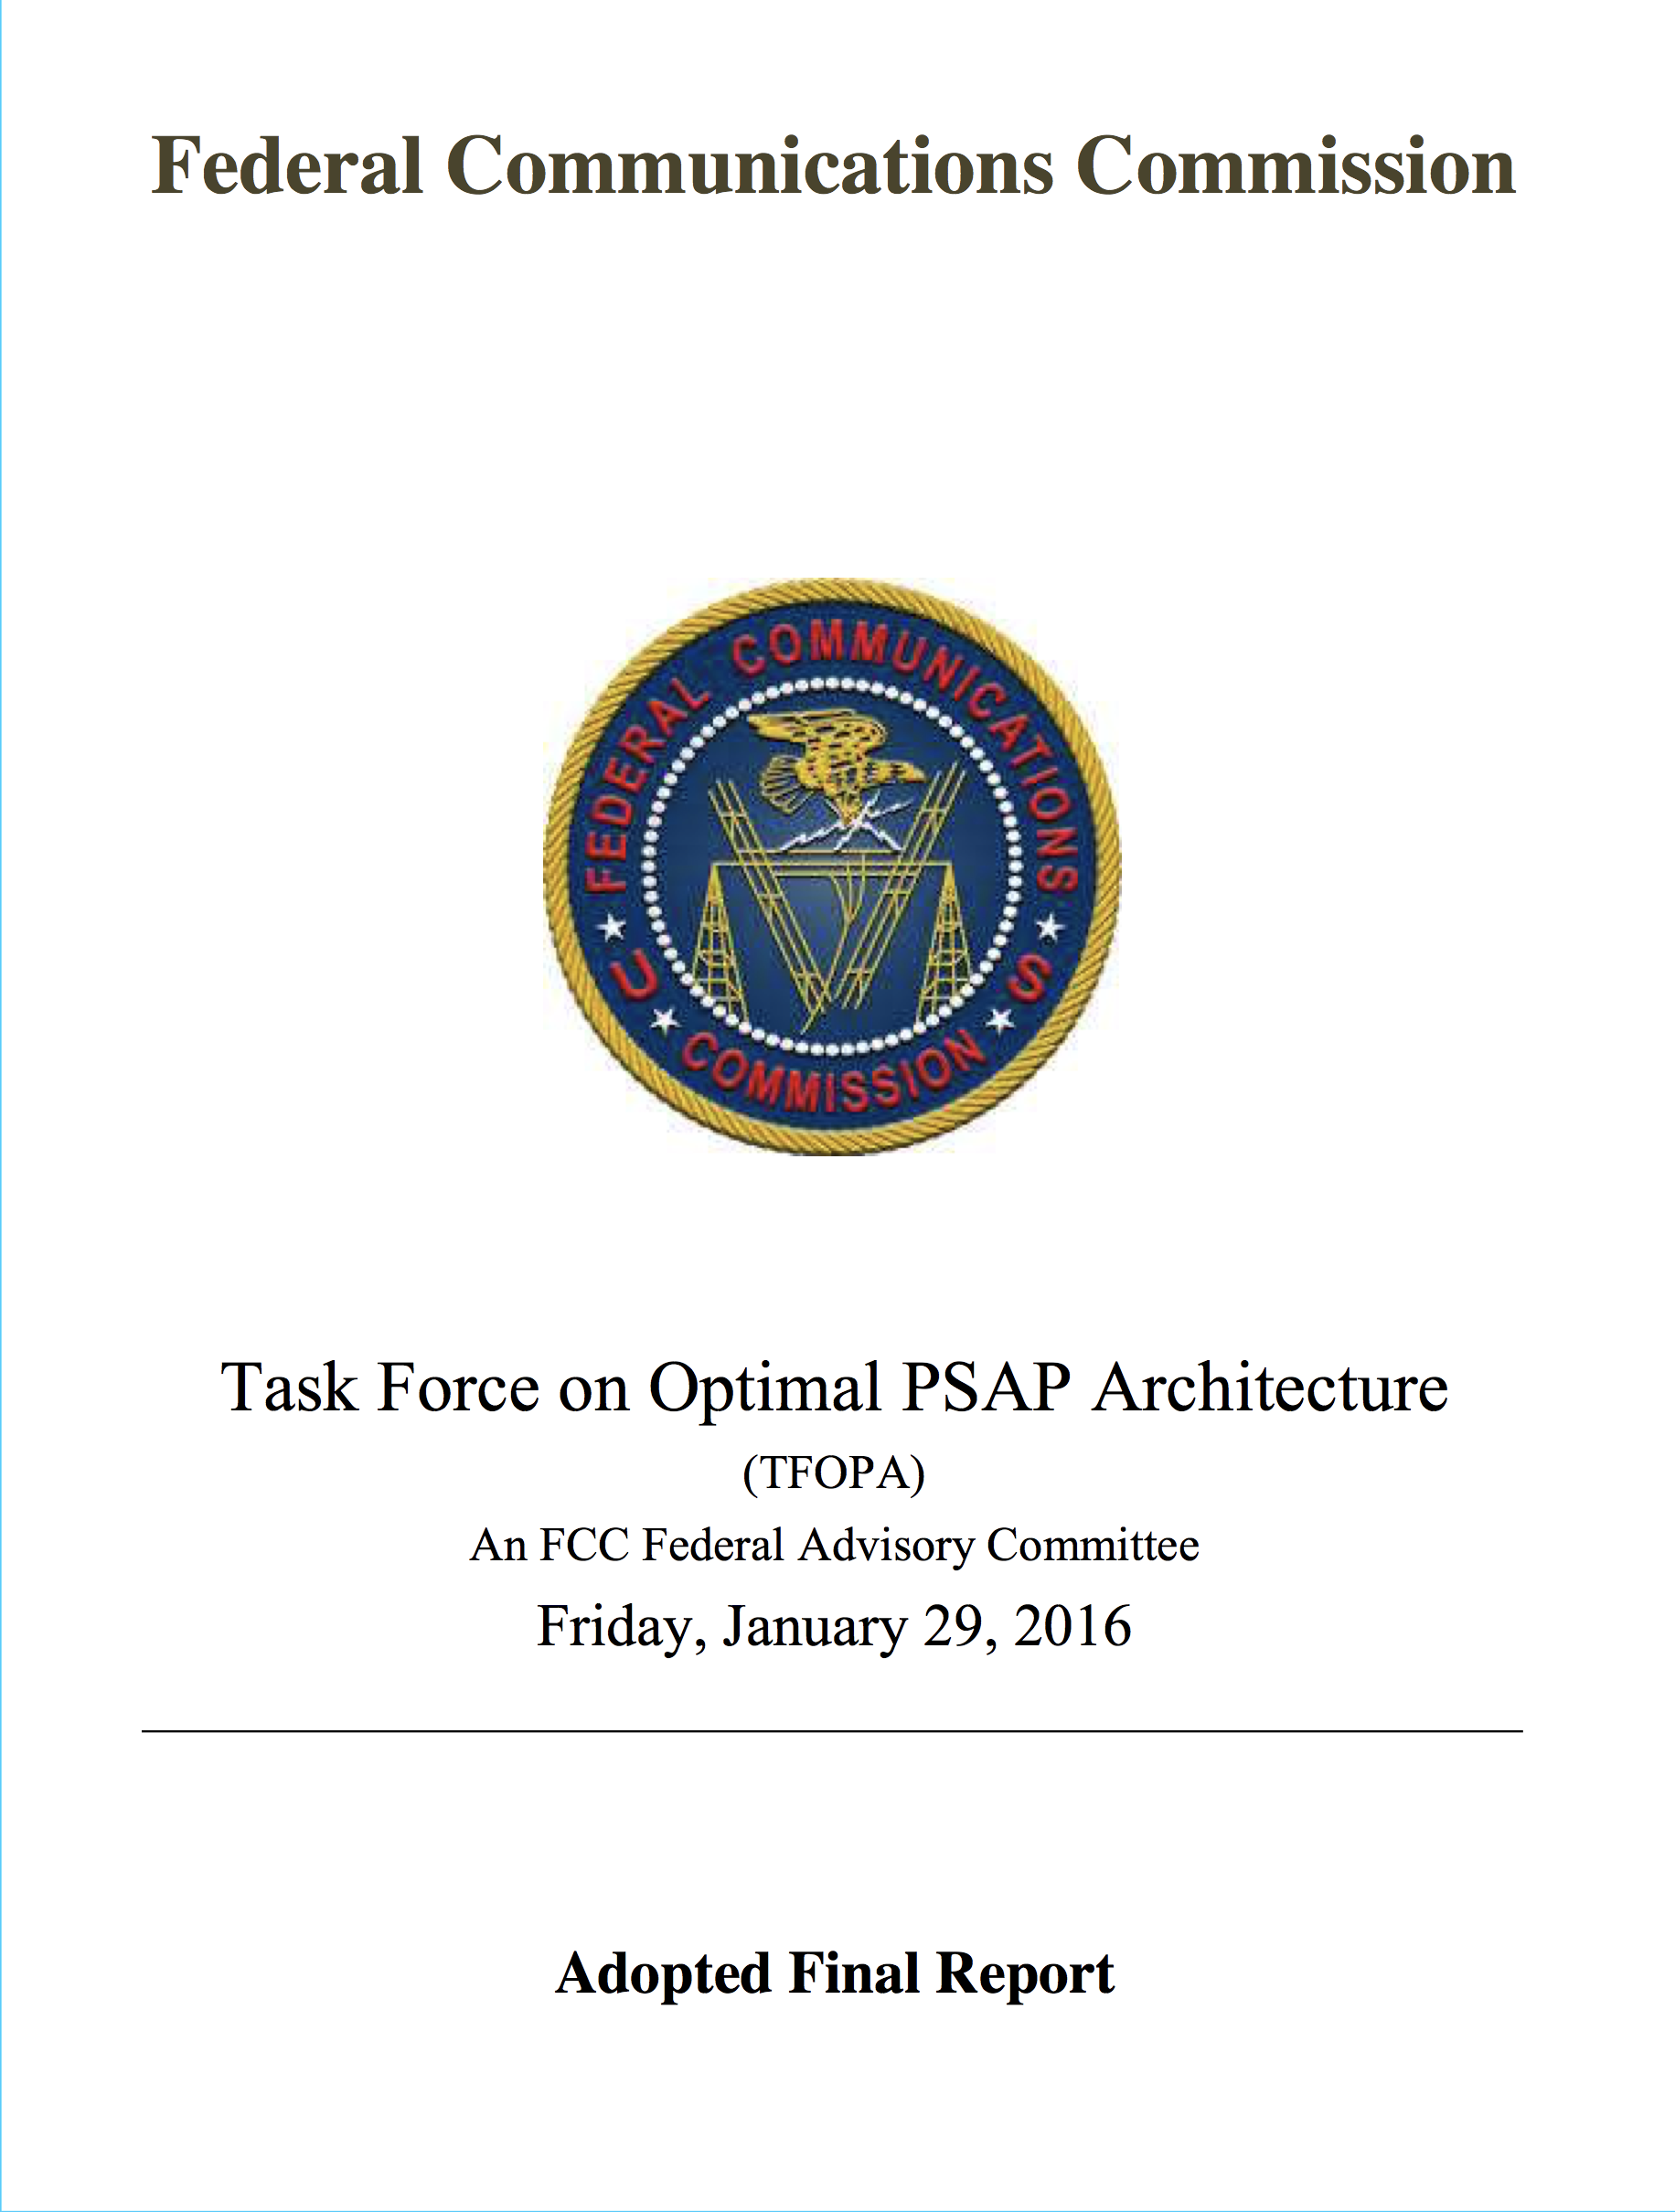 FCC: Optimal PSAP Architecture